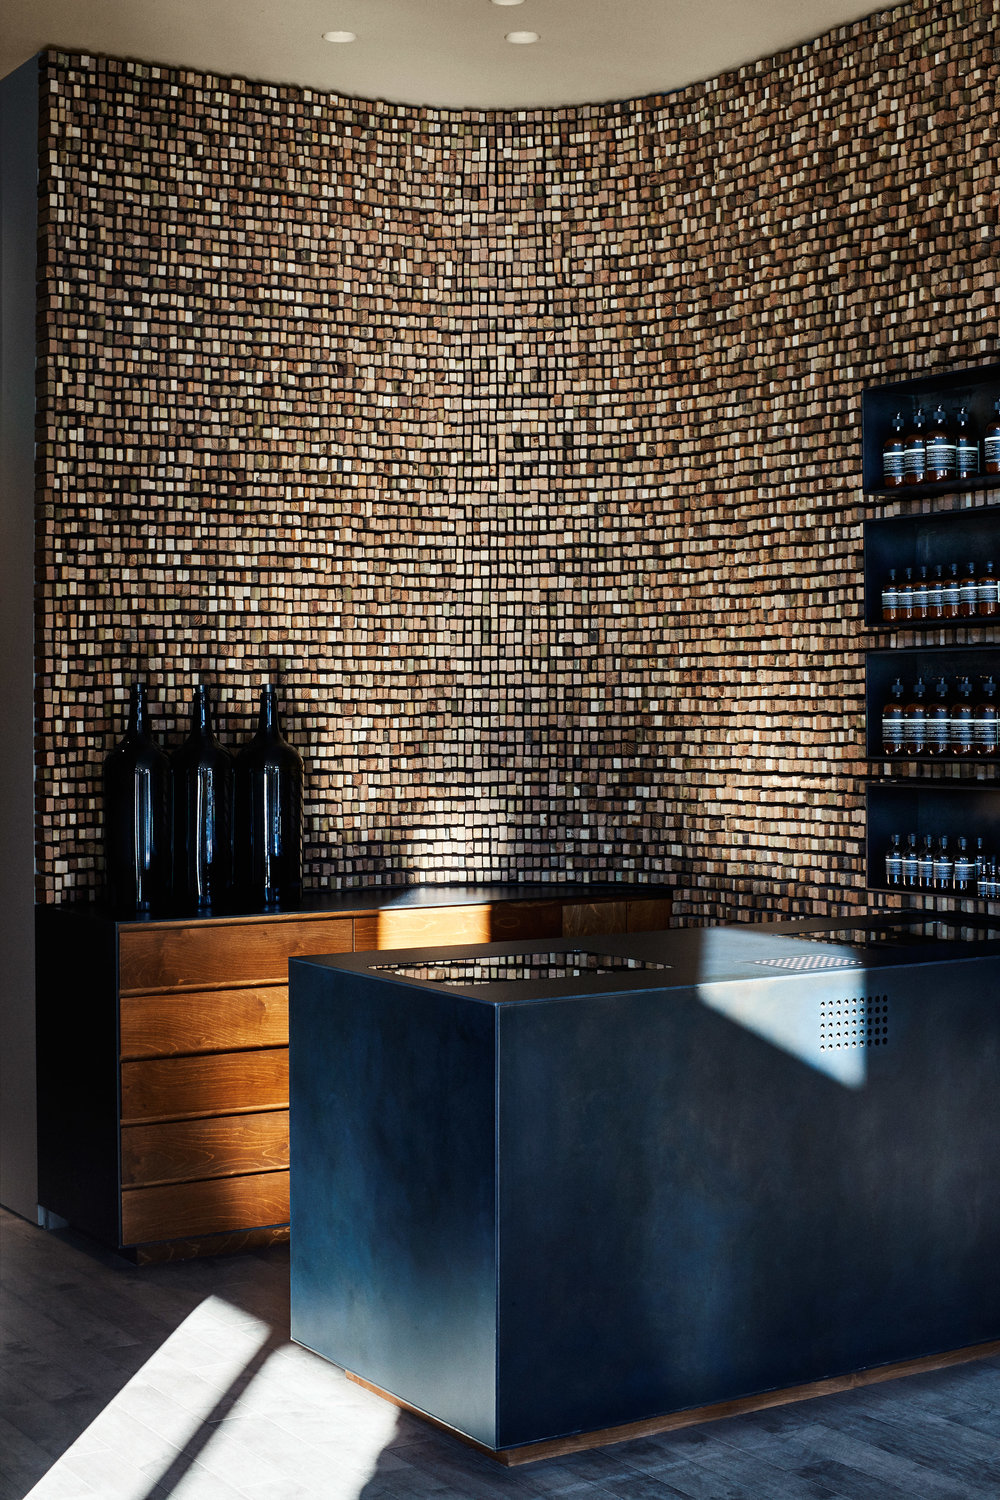 aesop-georgetown-tacklebox-architecture-interiors-washington-dc-usa_dezeen_2364_col_7.jpg